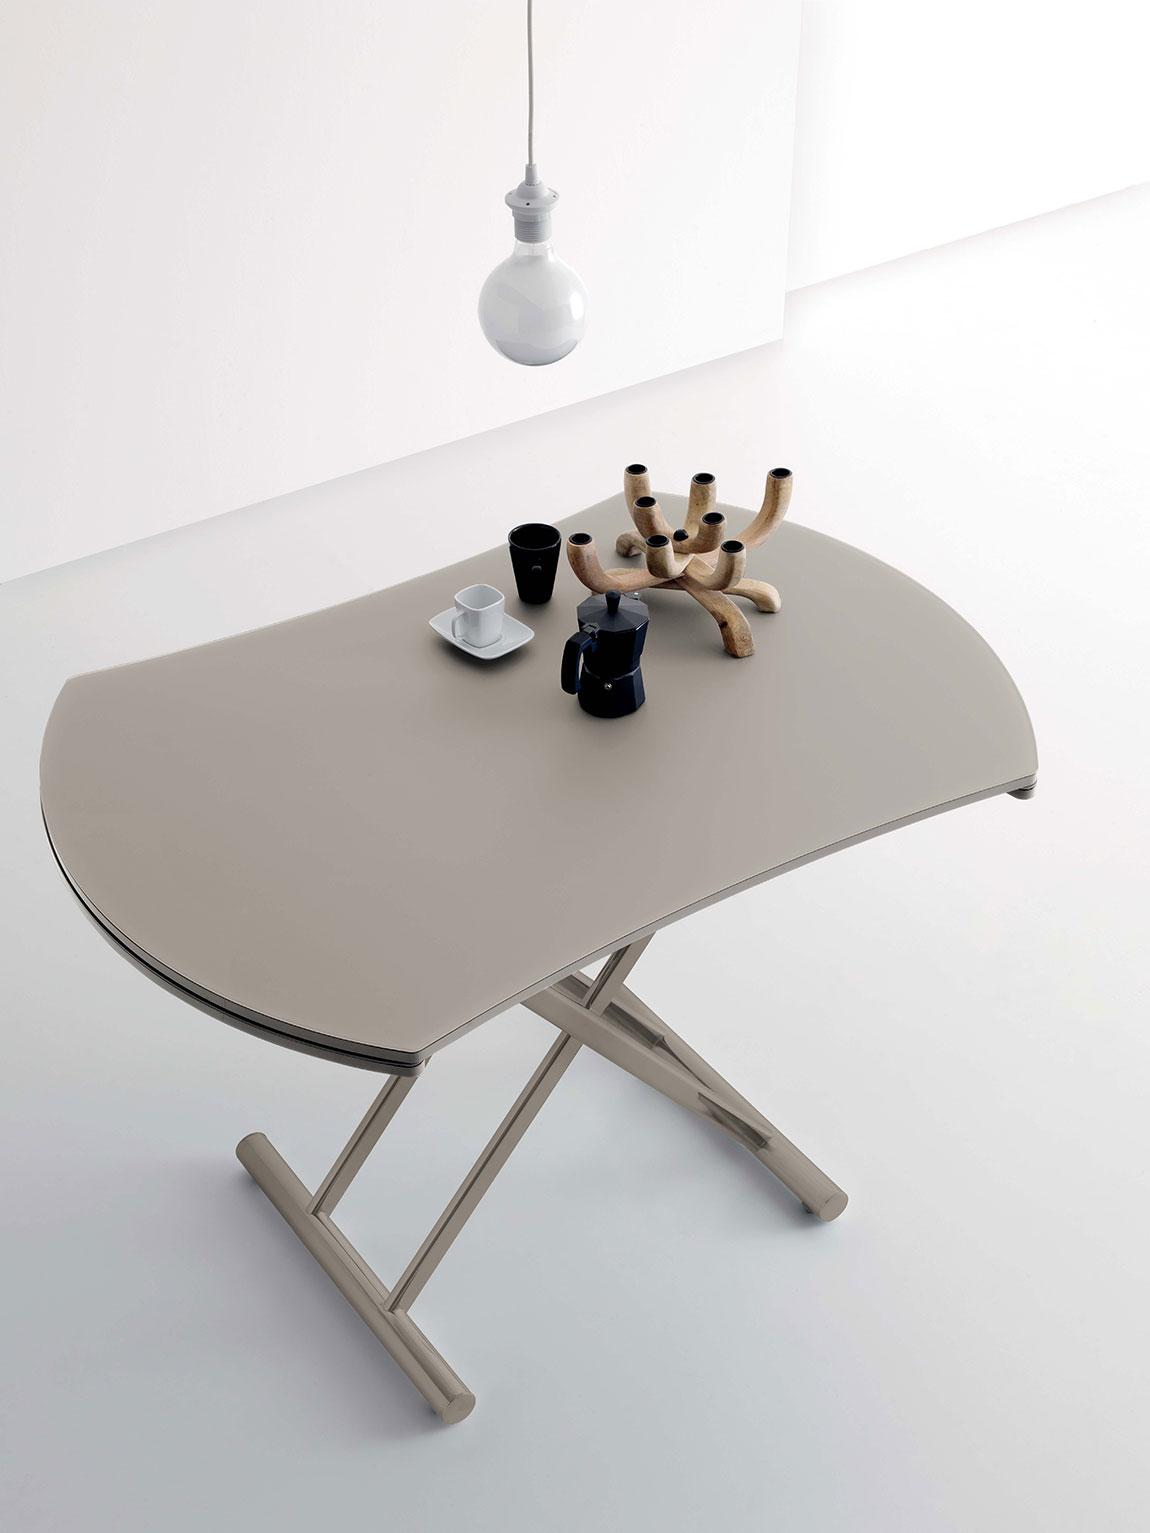 Up and down table transformable idd - Table transformable up down ...